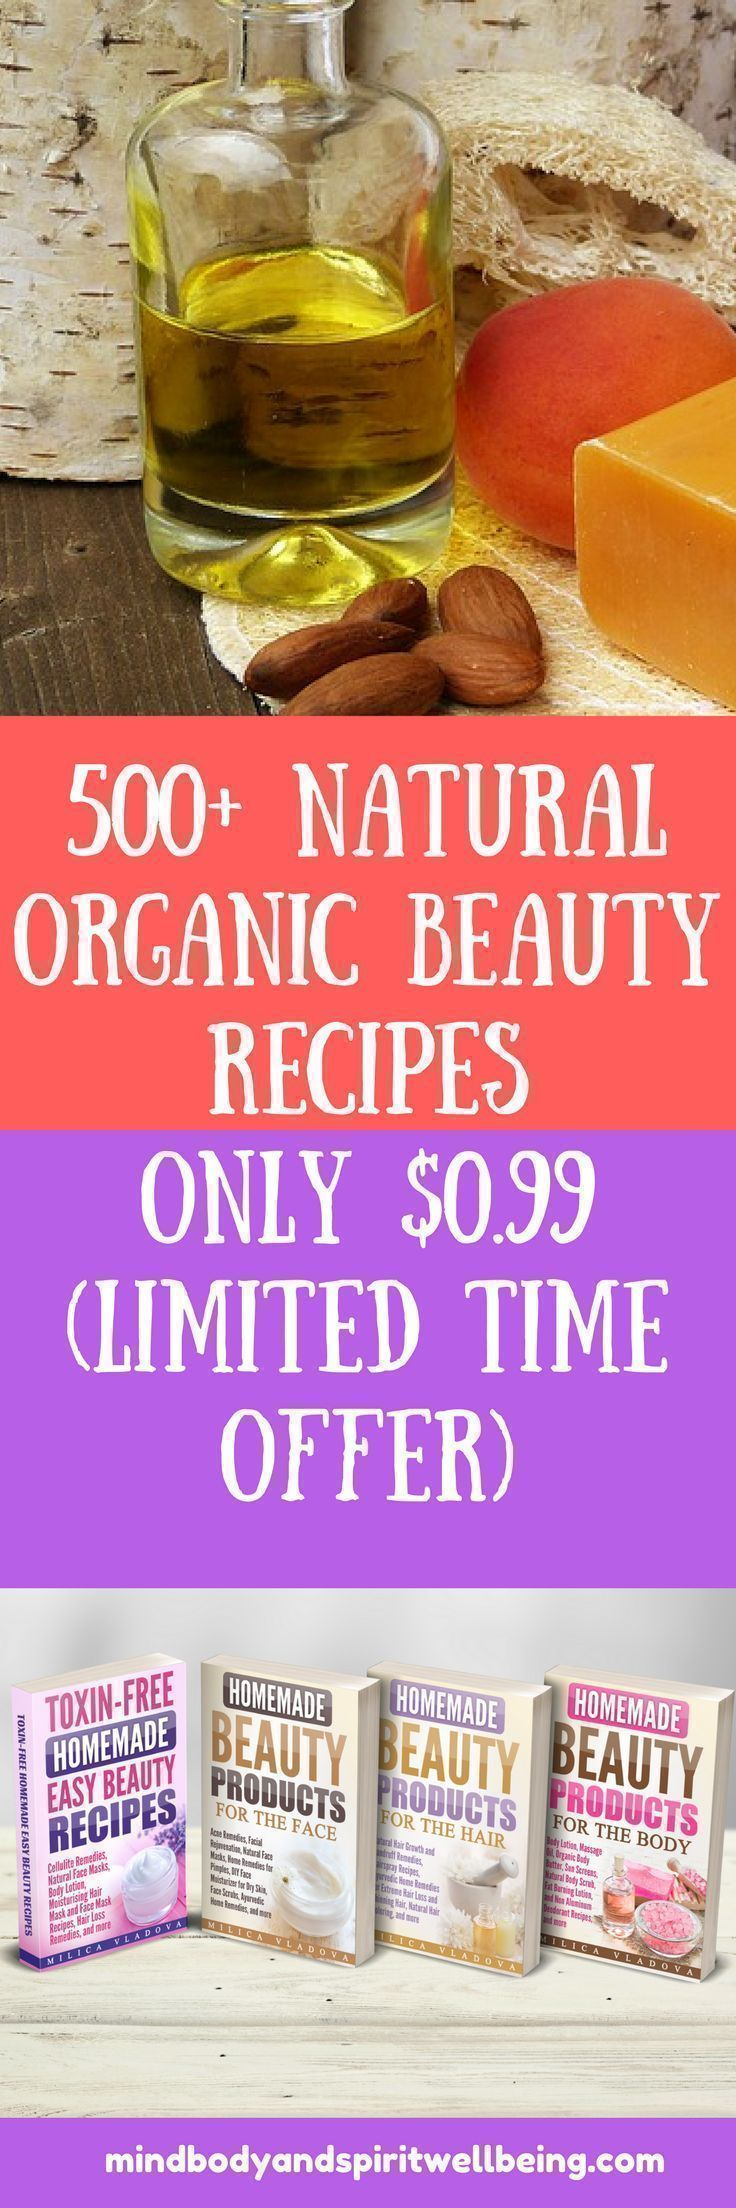 DIY beauty recipes, homemade skin care, natural cosmetics, hair care recipes, DIY body care, body lotion, body butter, face masks, acne remedies, hair loss remedies, fast hair growth,mature skin, oily skin,whitening treatments,Anti-cellulite treatments,Nail strengthening,toothpaste and mouthwash recipes,Dandruff healing,Natural remedies for acne, pimples, blackheads,, pimple home remedies,Hair repair, hair masks, anti-aging treatments, body scrubs and exfoliators #haircarediy…